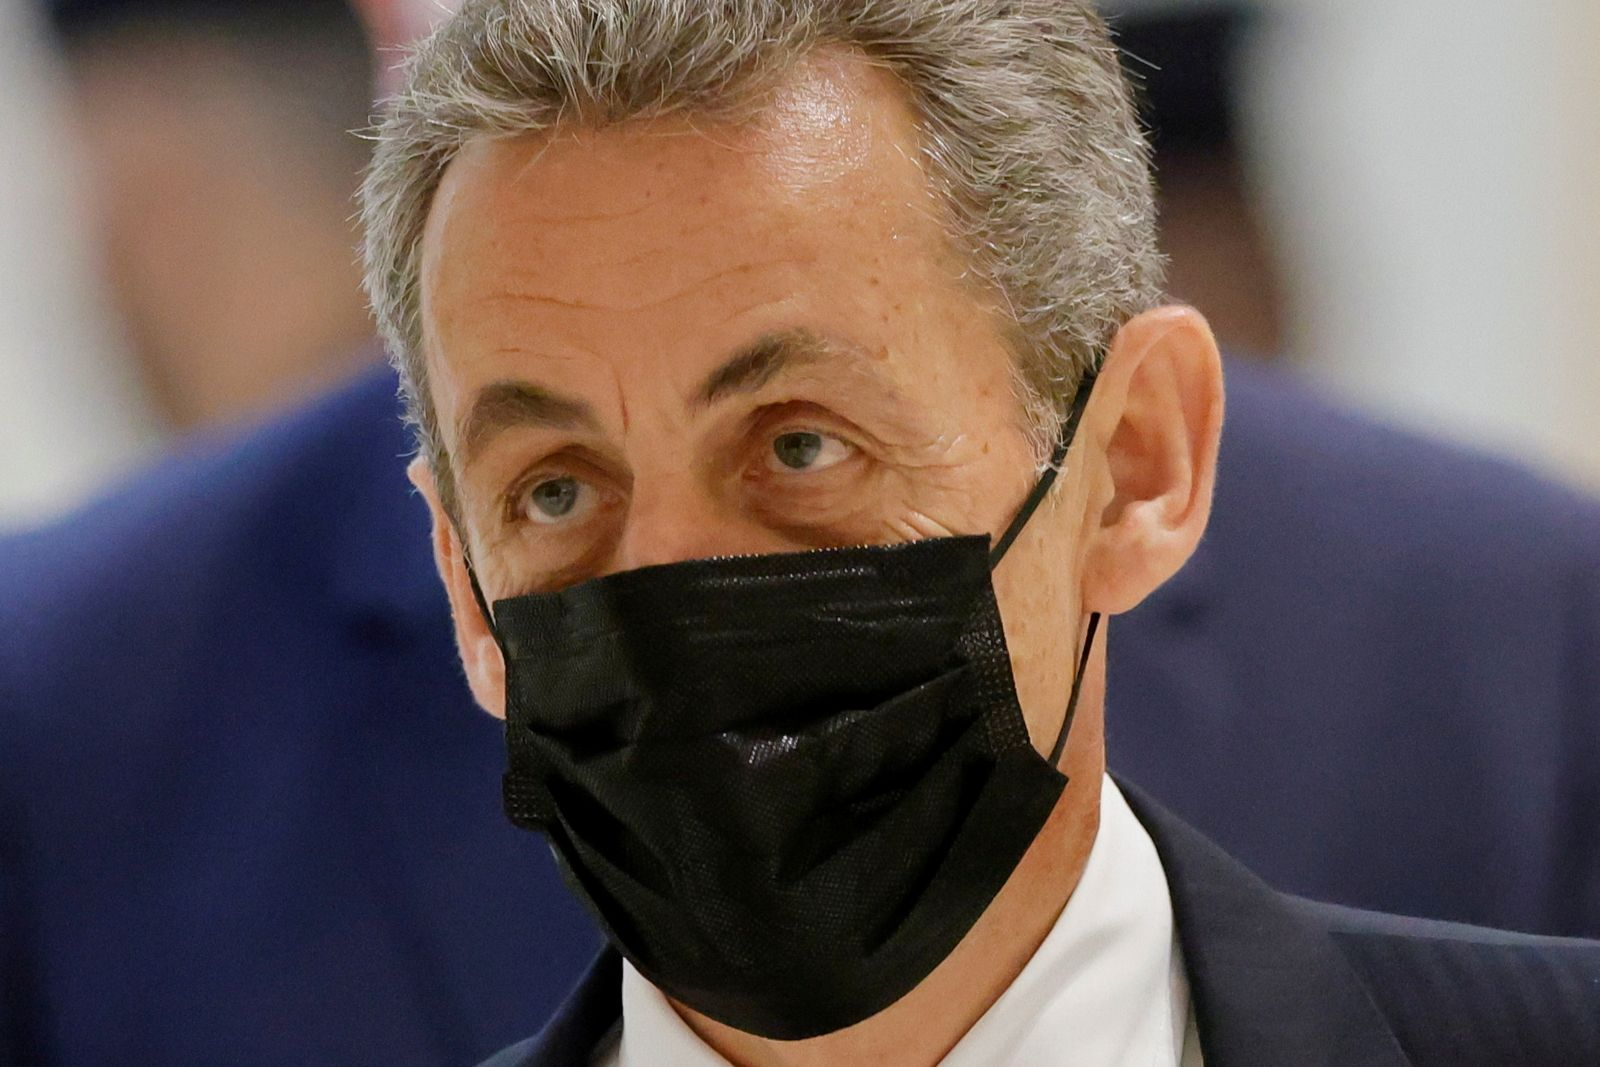 FILE PHOTO: The Bygmalion affair: Nicolas Sarkozy and 13 other defendants on trial in Paris